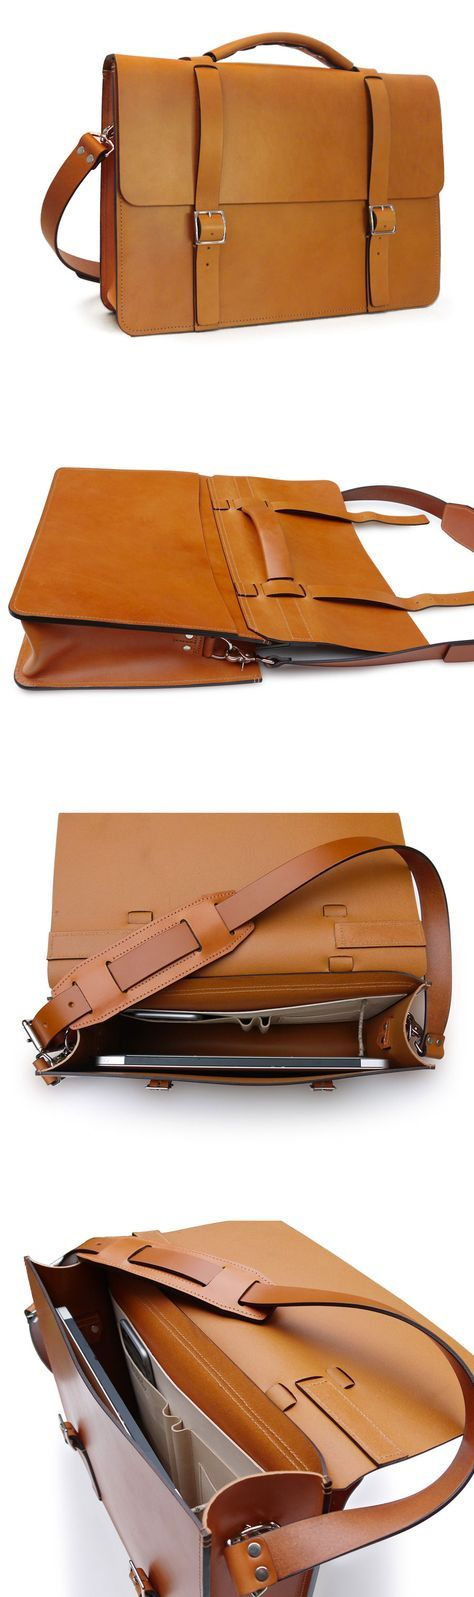 Our new color option, English Tan. basader - handmade bags | lifetime quality, timeless aesthetic.